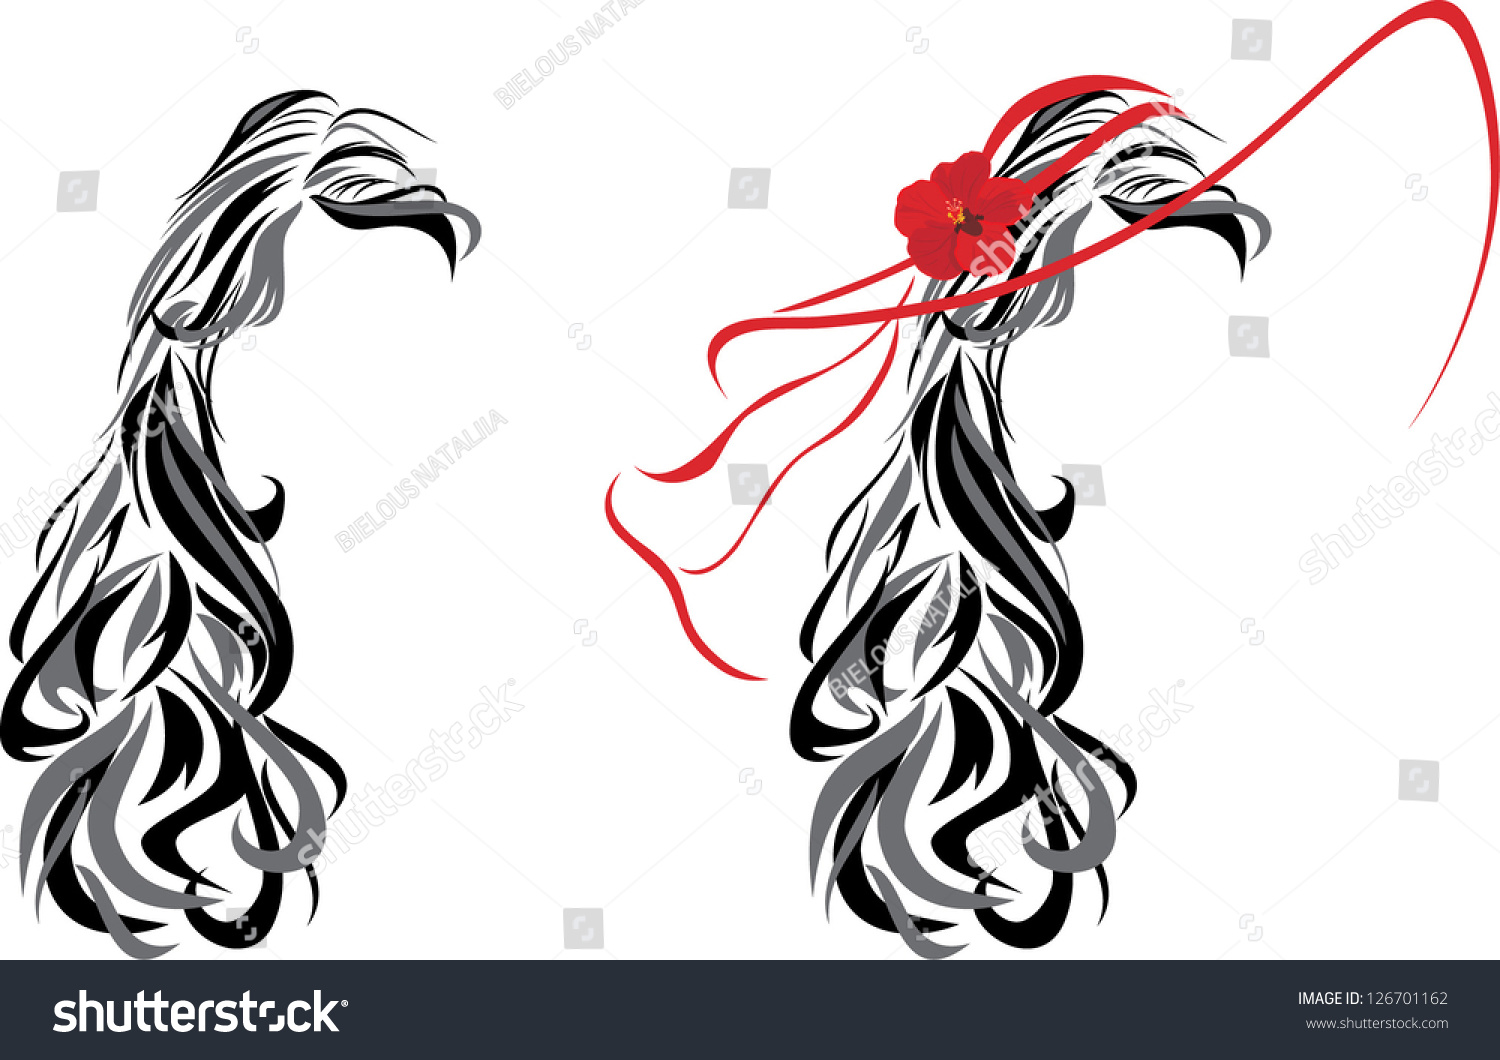 Hairstyle Vector: Elegant Female Hairstyle. Vector